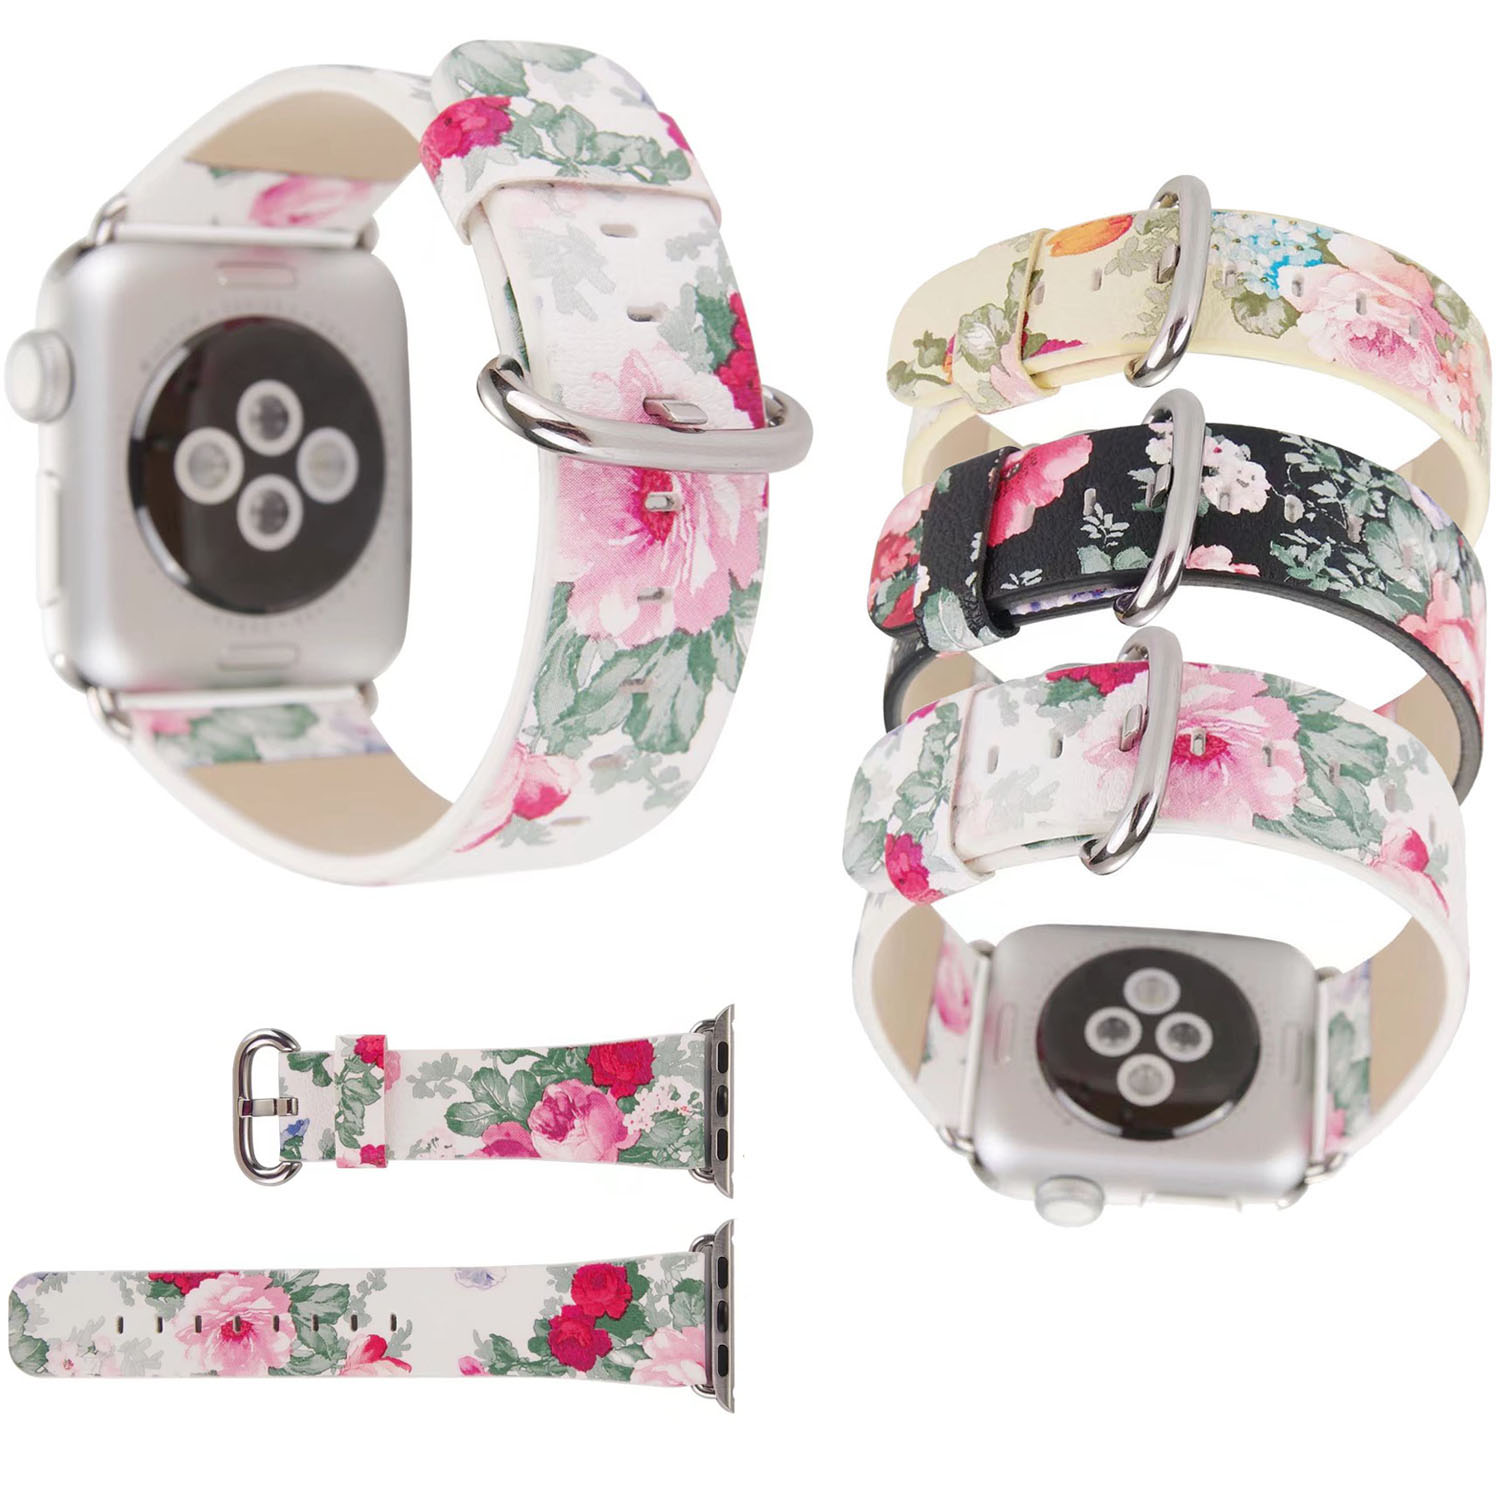 Flower Leather Strap for Apple Watch Series 3 Band Women Floral Print Bracelet for Apple iWatch Series 1/2 42mm 38mm Watchbands ashei watch wrist bracelet strap for apple watch band series 3 leather 42mm 38mm retro vintage watchbands for iwatch series 1 2